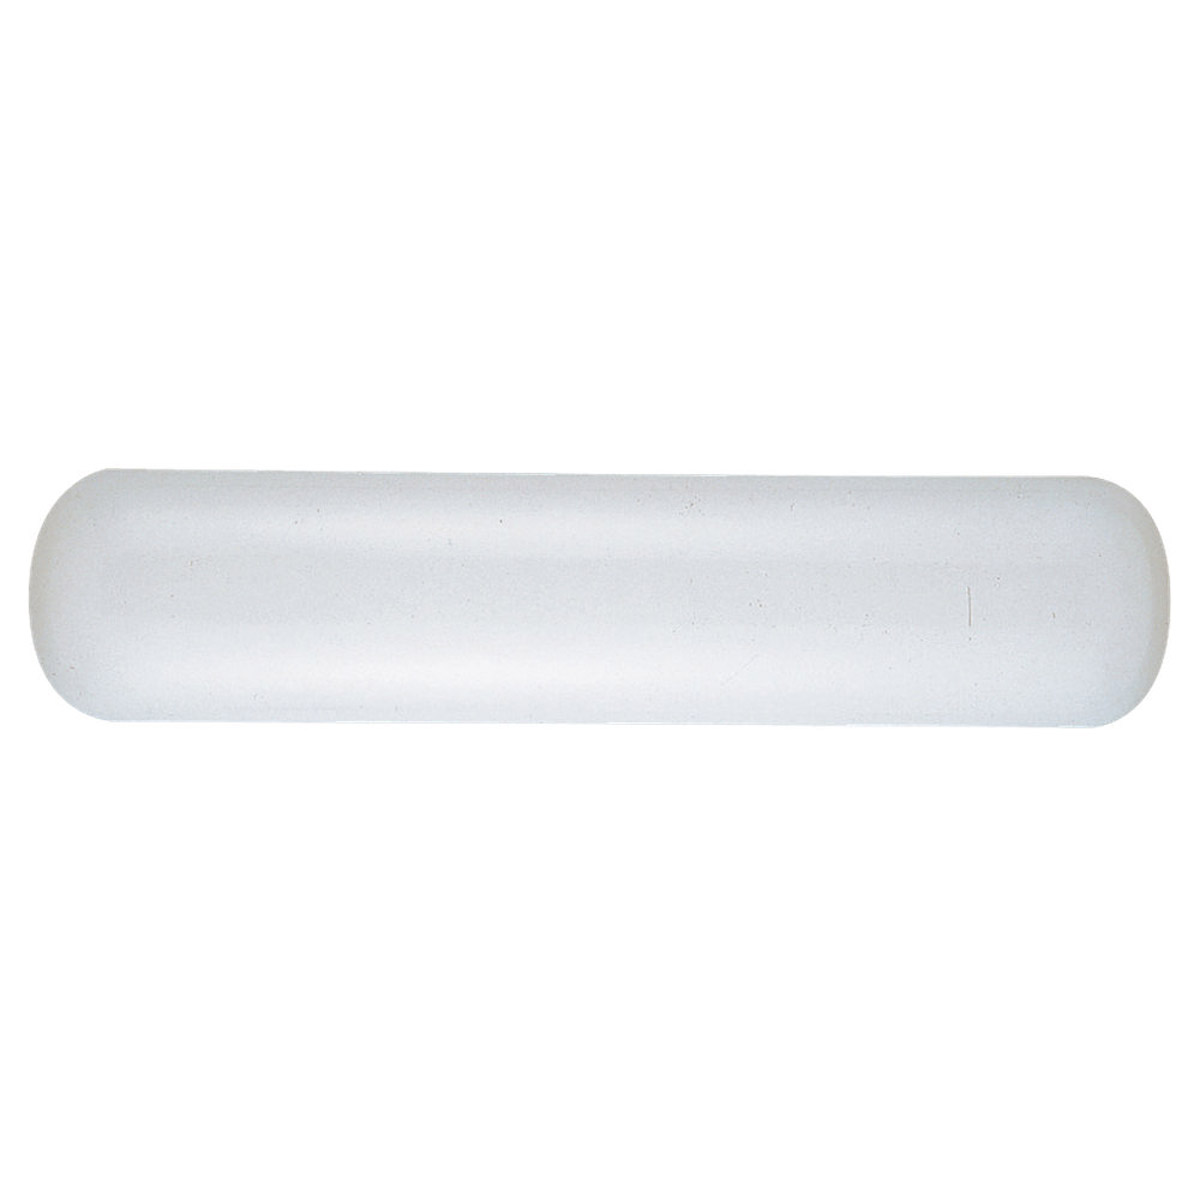 Sea Gull 4908LE-68 Pillow Lens Fluorescent 2 Light 27 inch White Plastic Wall Sconce Wall Light in 26.75 in. photo